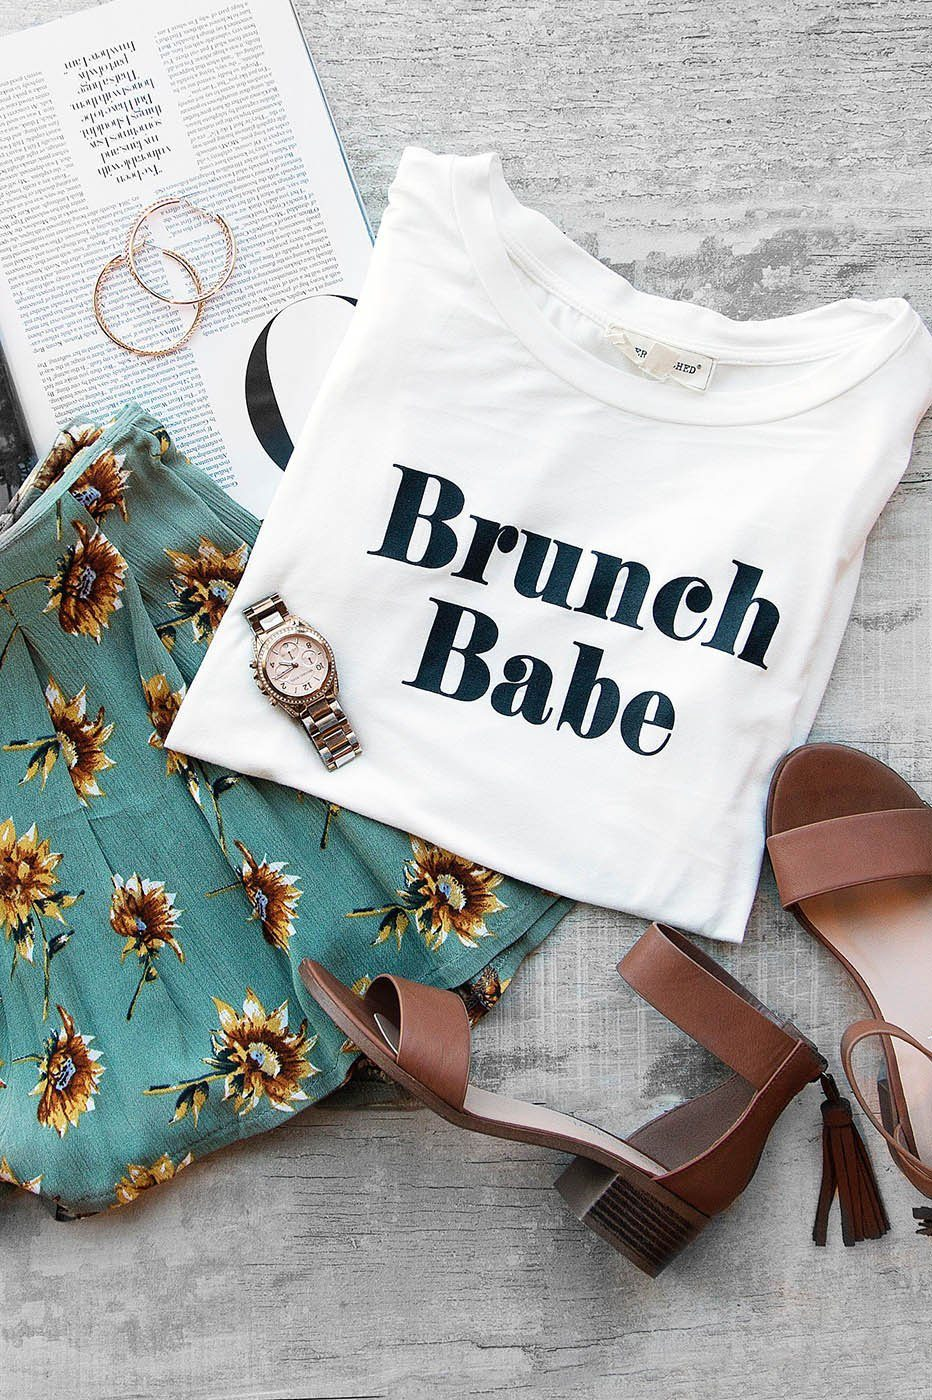 Brunch Babe Top | Shop Priceless